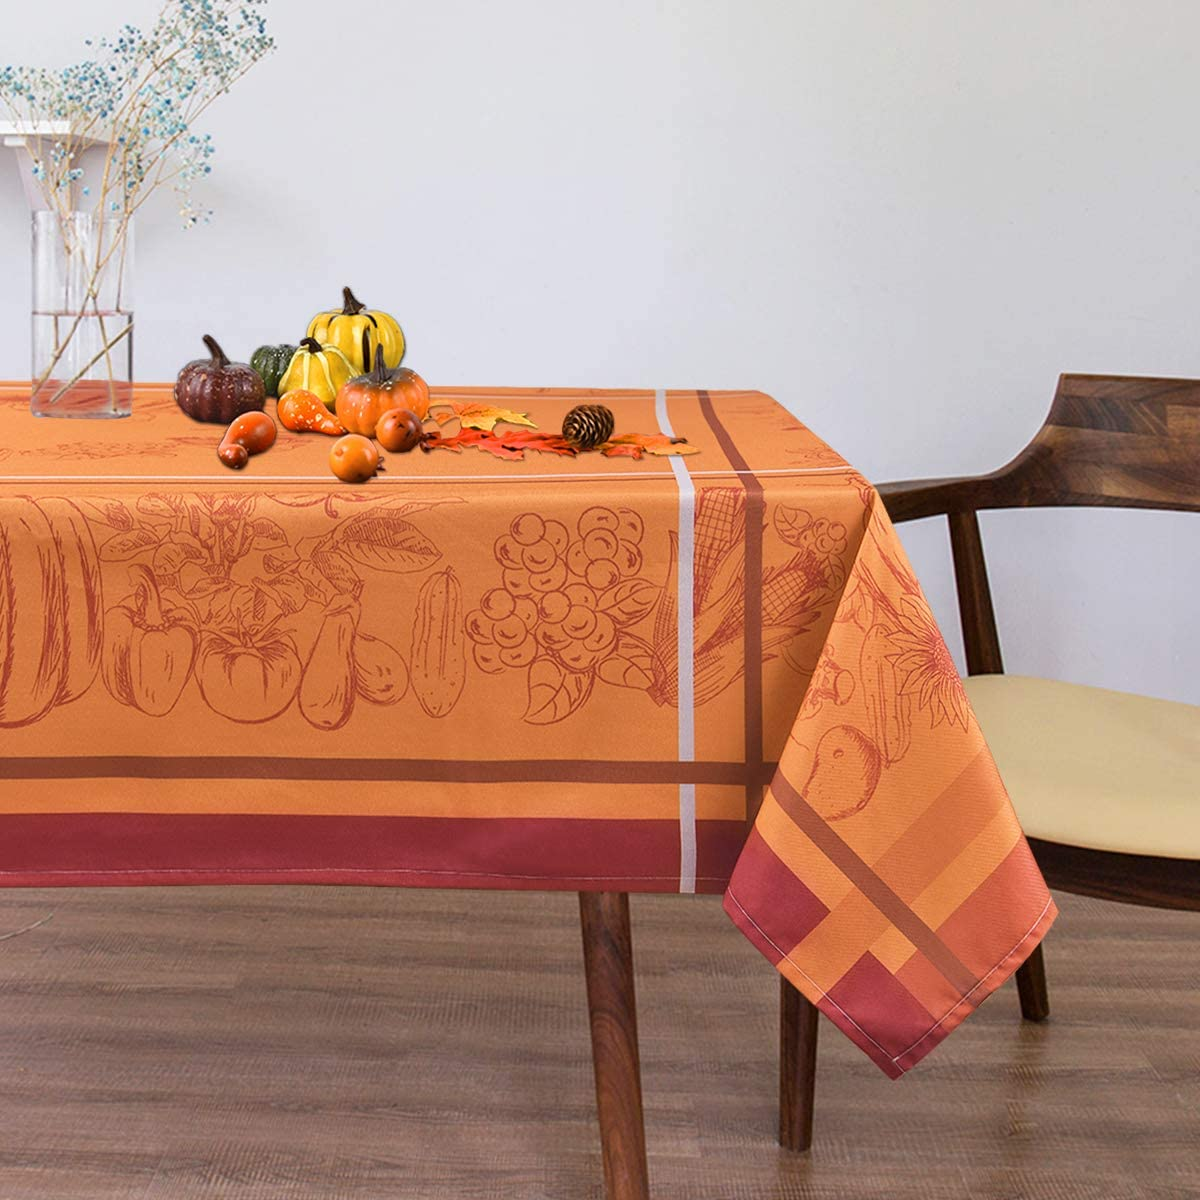 Amazon Com Sunm Boutique Table Cloth Autumn Harvest And Thanksgiving Tablecloth Pumpkin Waterproof Tablecover For Thanksgiving Dinner Parties Orange 55 55 Inches Kitchen Dining